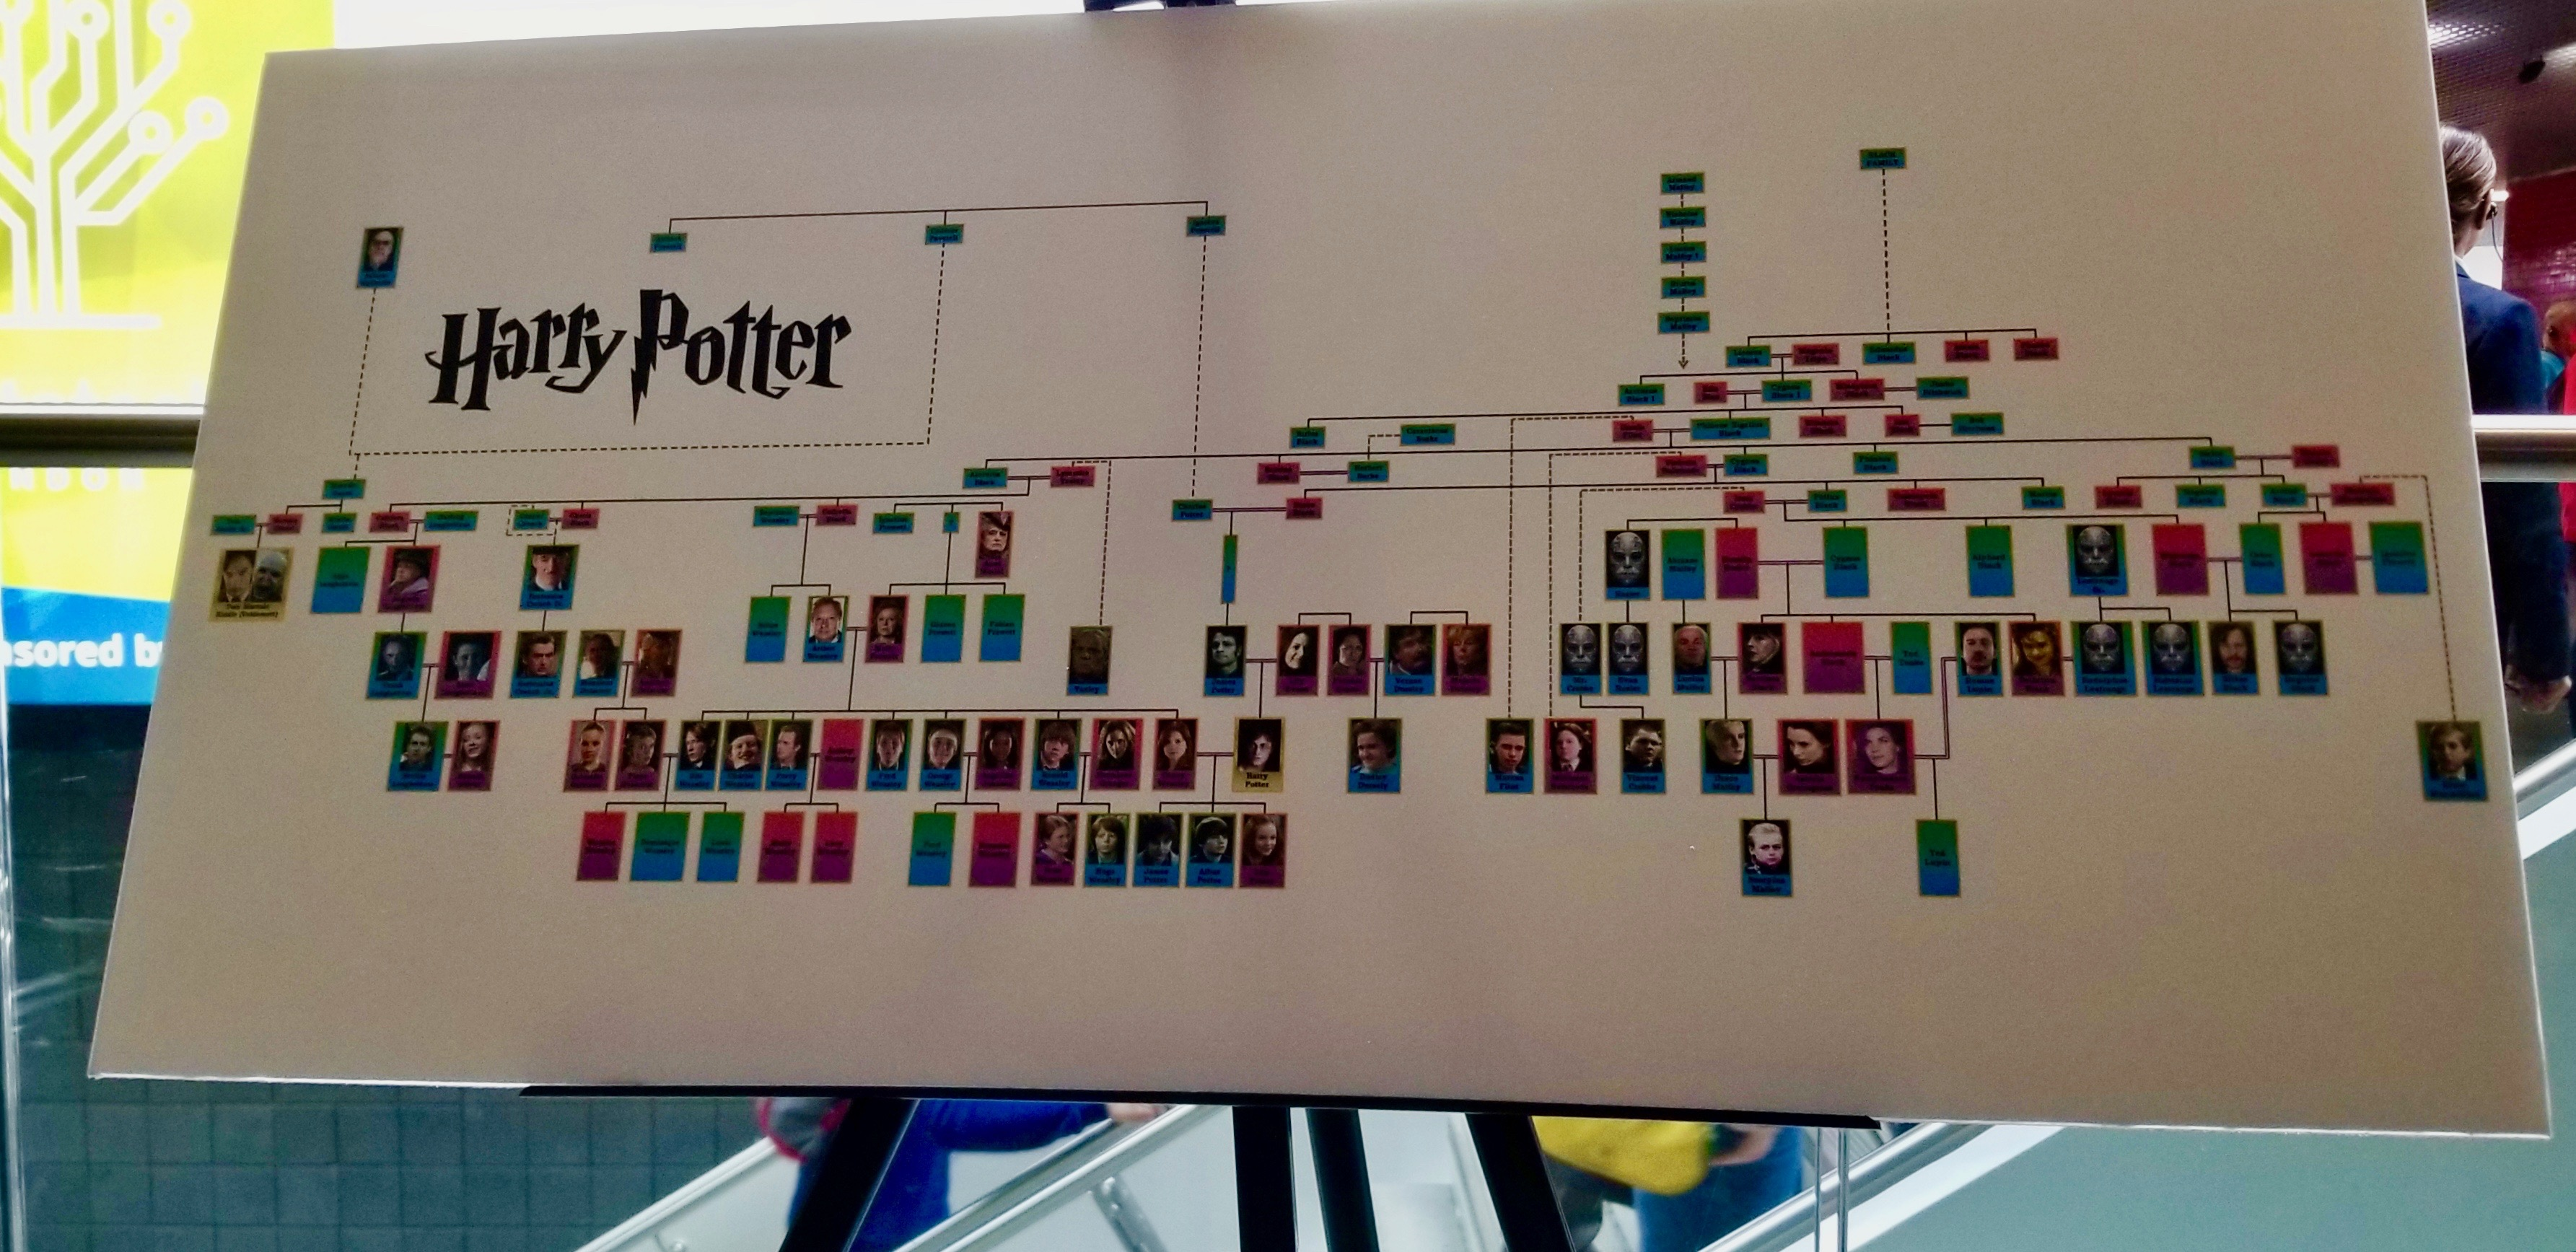 A Harry Potter-themed pedigree chart at RootsTech London is an effort to draw some attention and smiles from those participating in the neighboring Comic Con at the London ExCel on Oct. 26, 2019.